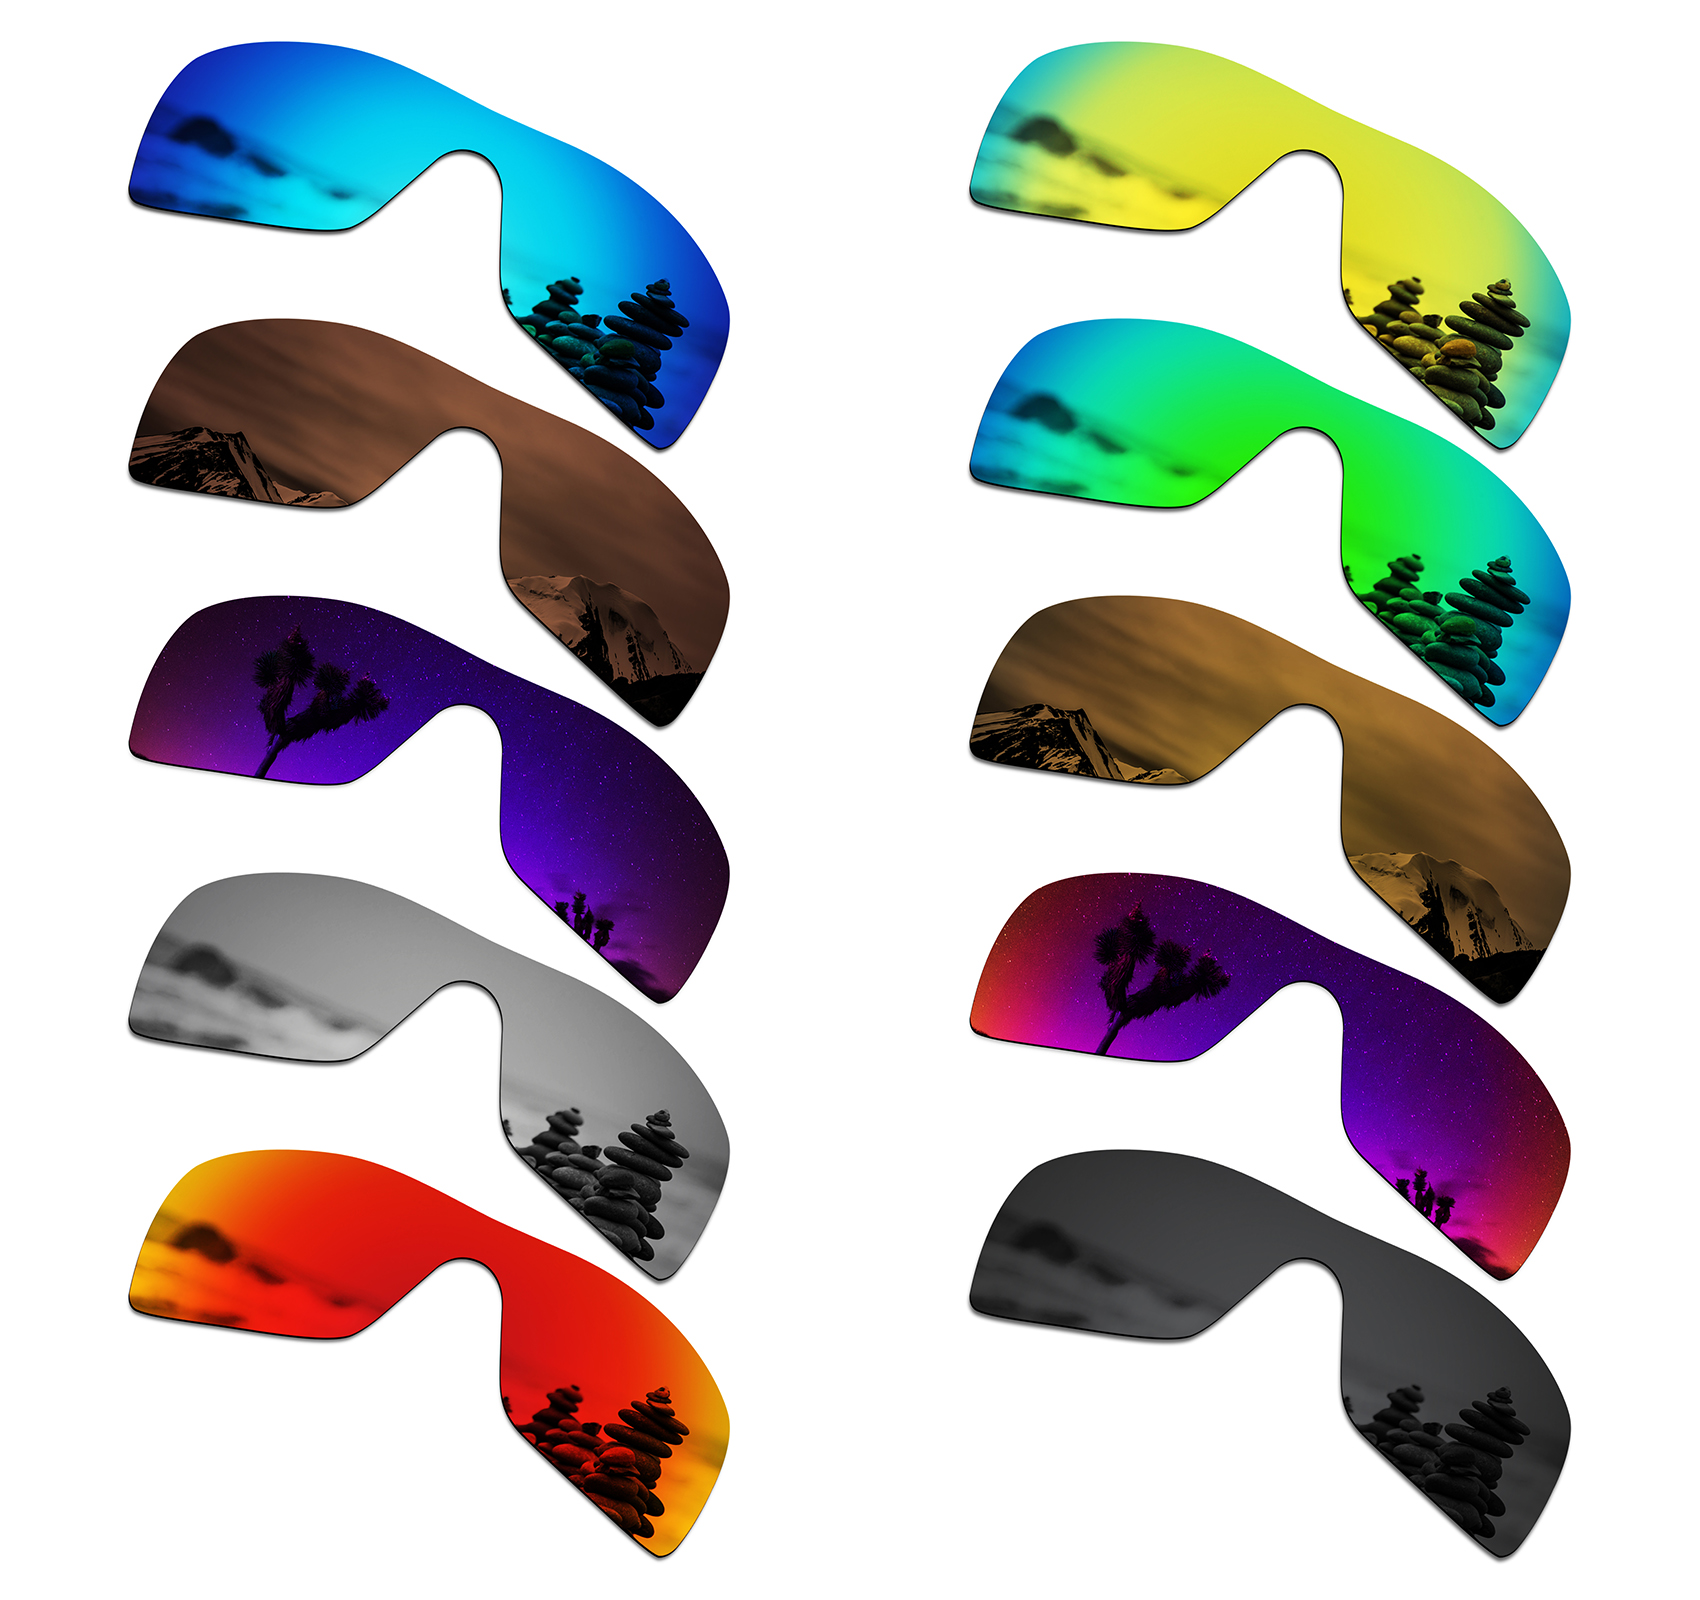 Dropshipping SmartVLT Replacement Lenses Polarized For Oakley Batwolf Sunglasses  - Multiple Pieces Packed